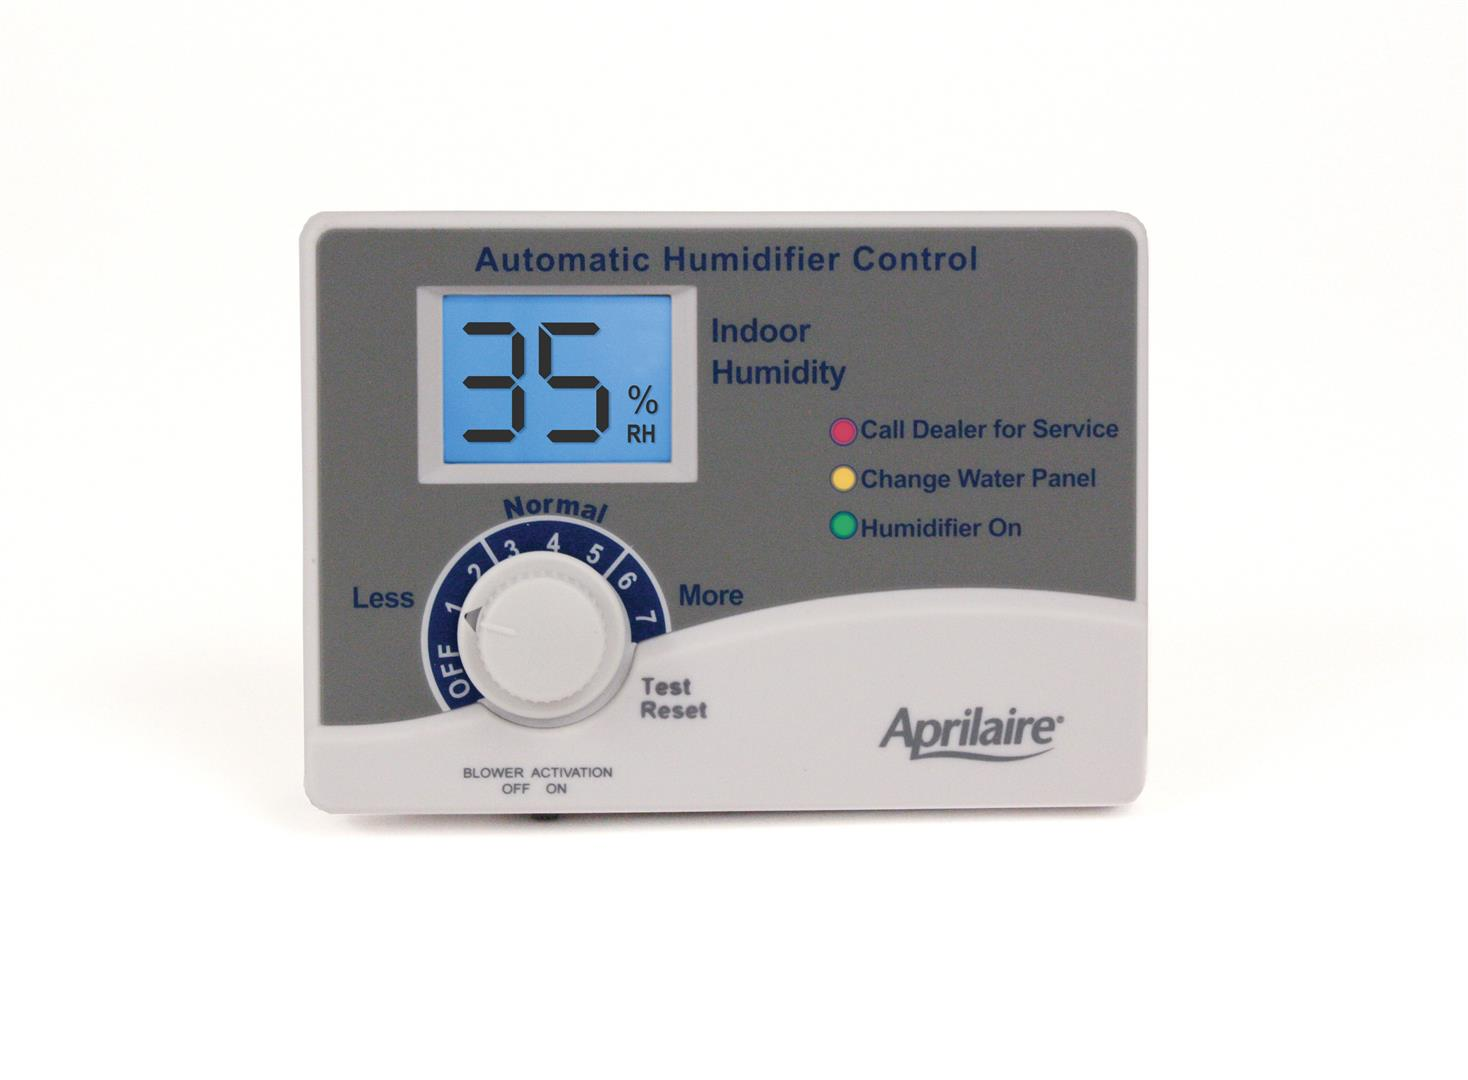 hight resolution of products aprilaire 60 automatic humidistat controller aprilaire 500 humidifier model 60 humidistat wiring help